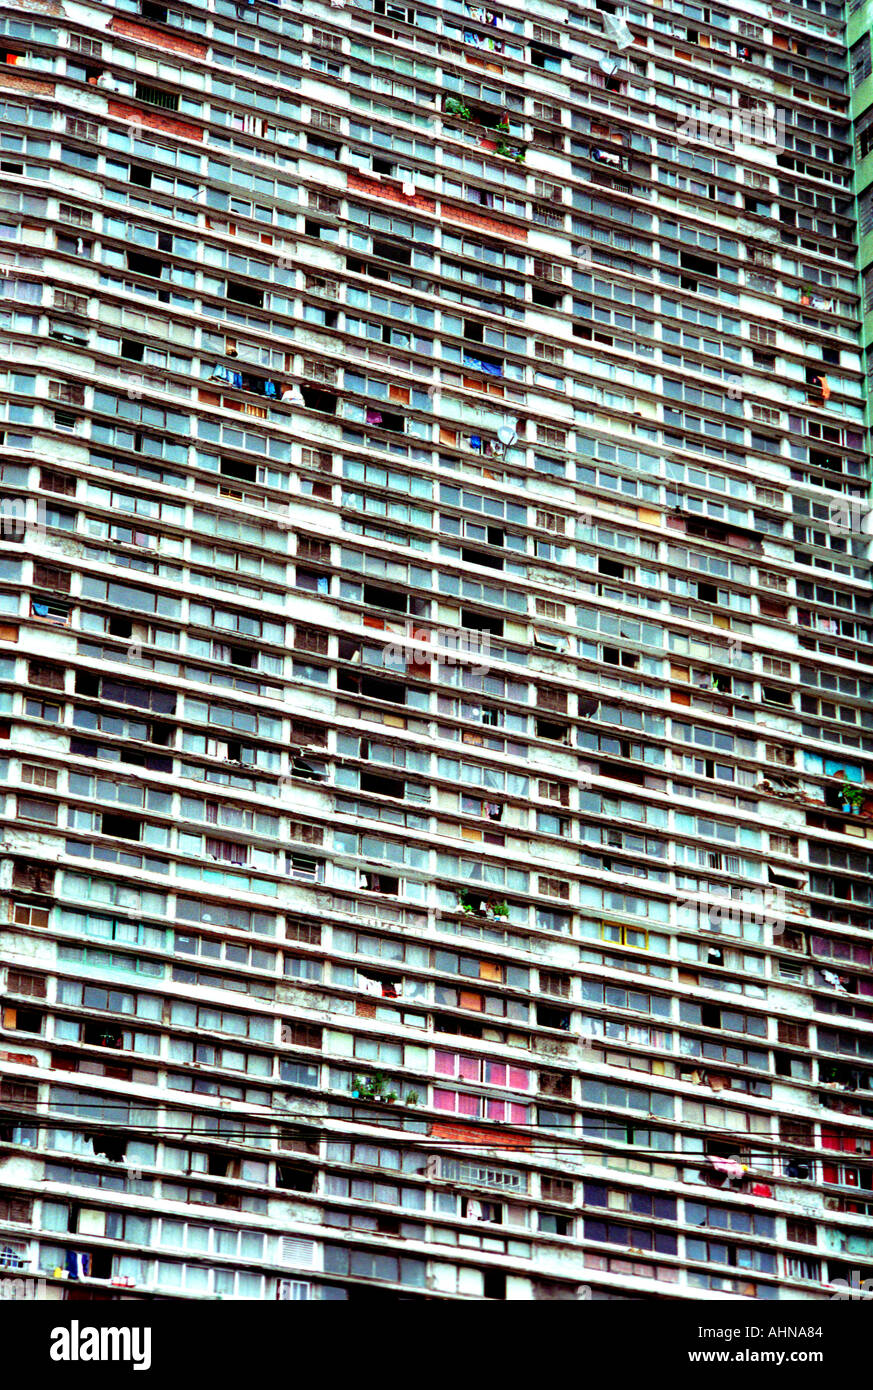 Full Frame Image Of An Apartment Complex In A Poor District Of Sao Paolo  Brazil